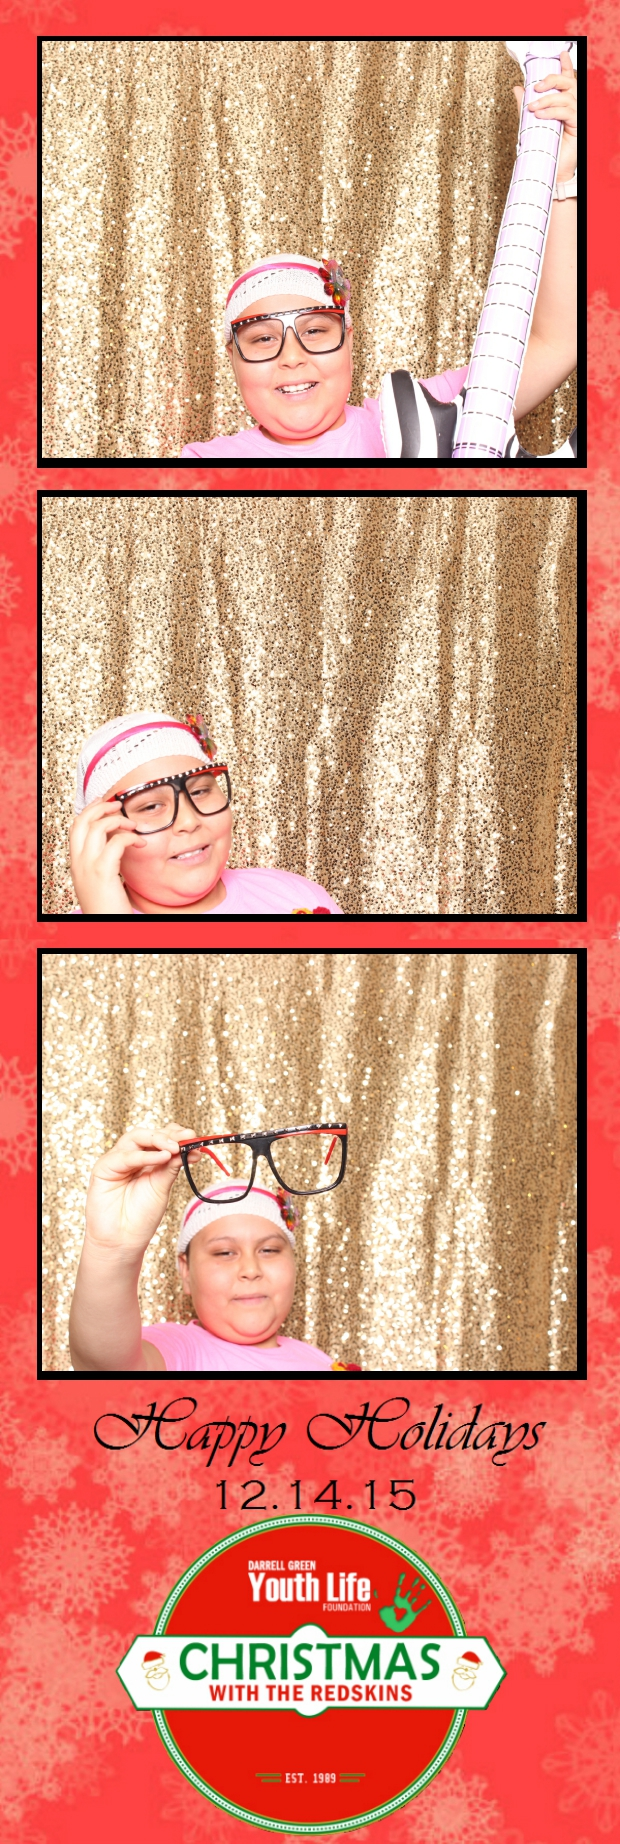 Guest House Events Photo Booth DGYLF Strips (33).jpg